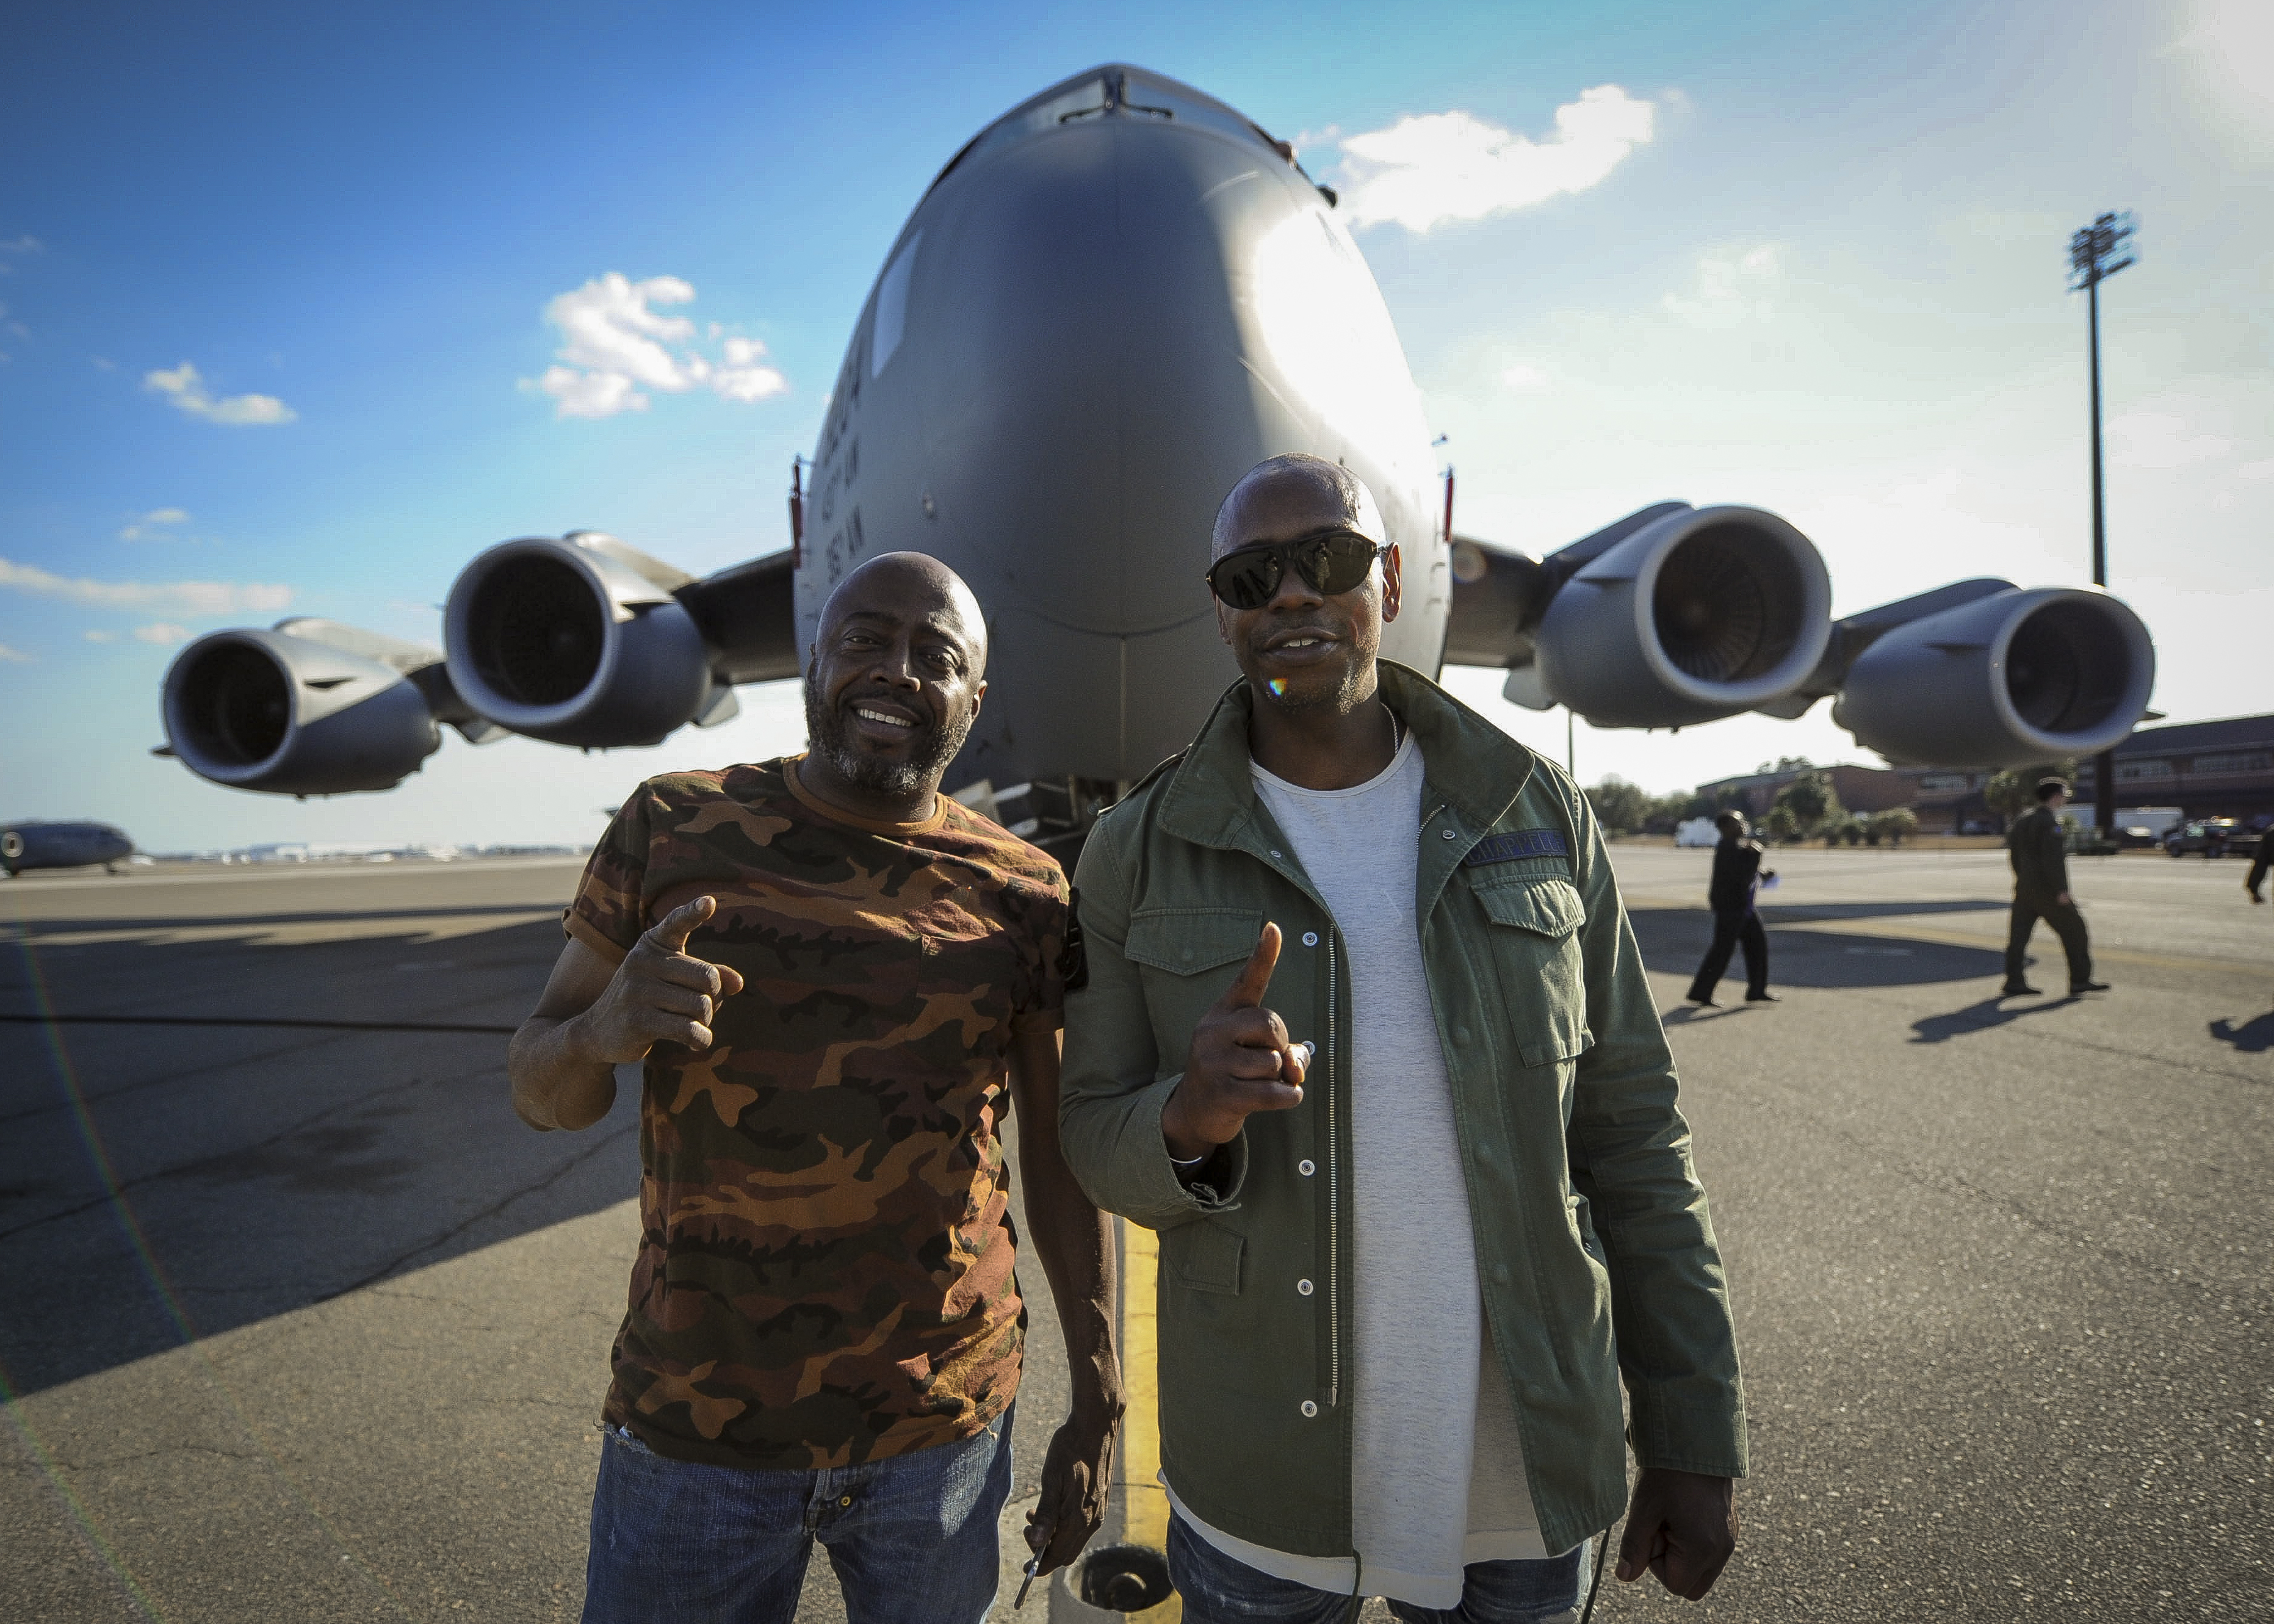 file dave chappelle and donnell rawlings stand in front of a c 17 globemaster iii 32666816002 jpg wikimedia commons https commons wikimedia org wiki file dave chappelle and donnell rawlings stand in front of a c 17 globemaster iii 32666816002 jpg